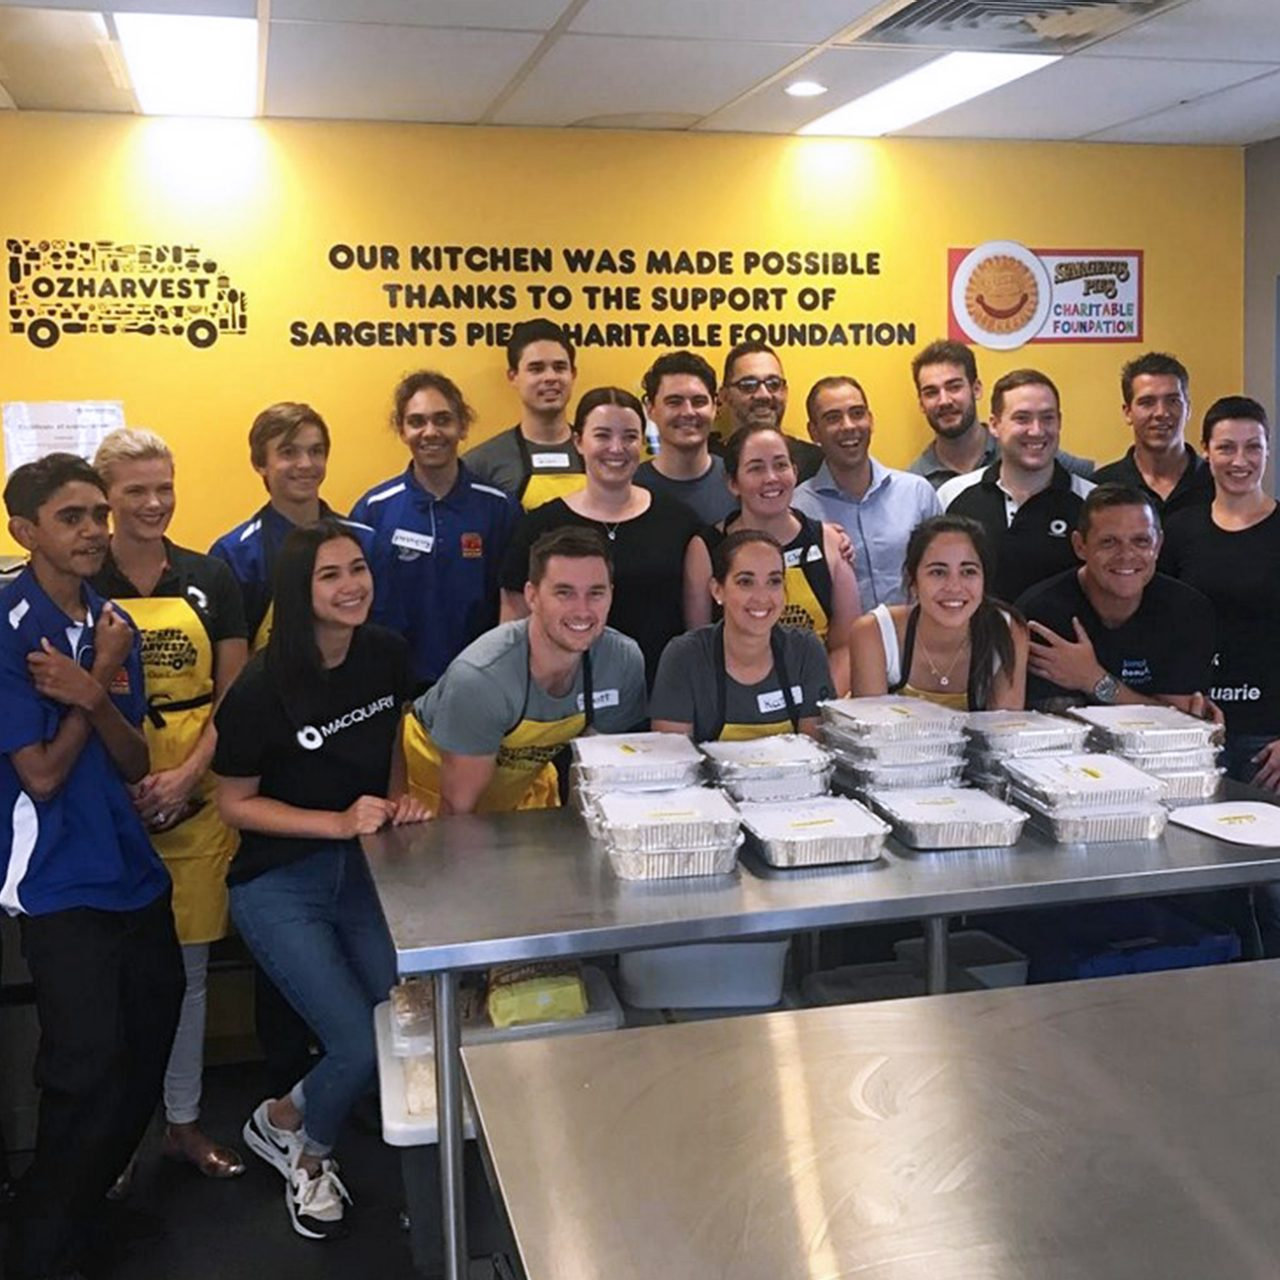 Brisbane staff volunteered with the Clontarf Foundation and OzHarvest, preparing food for the homeless